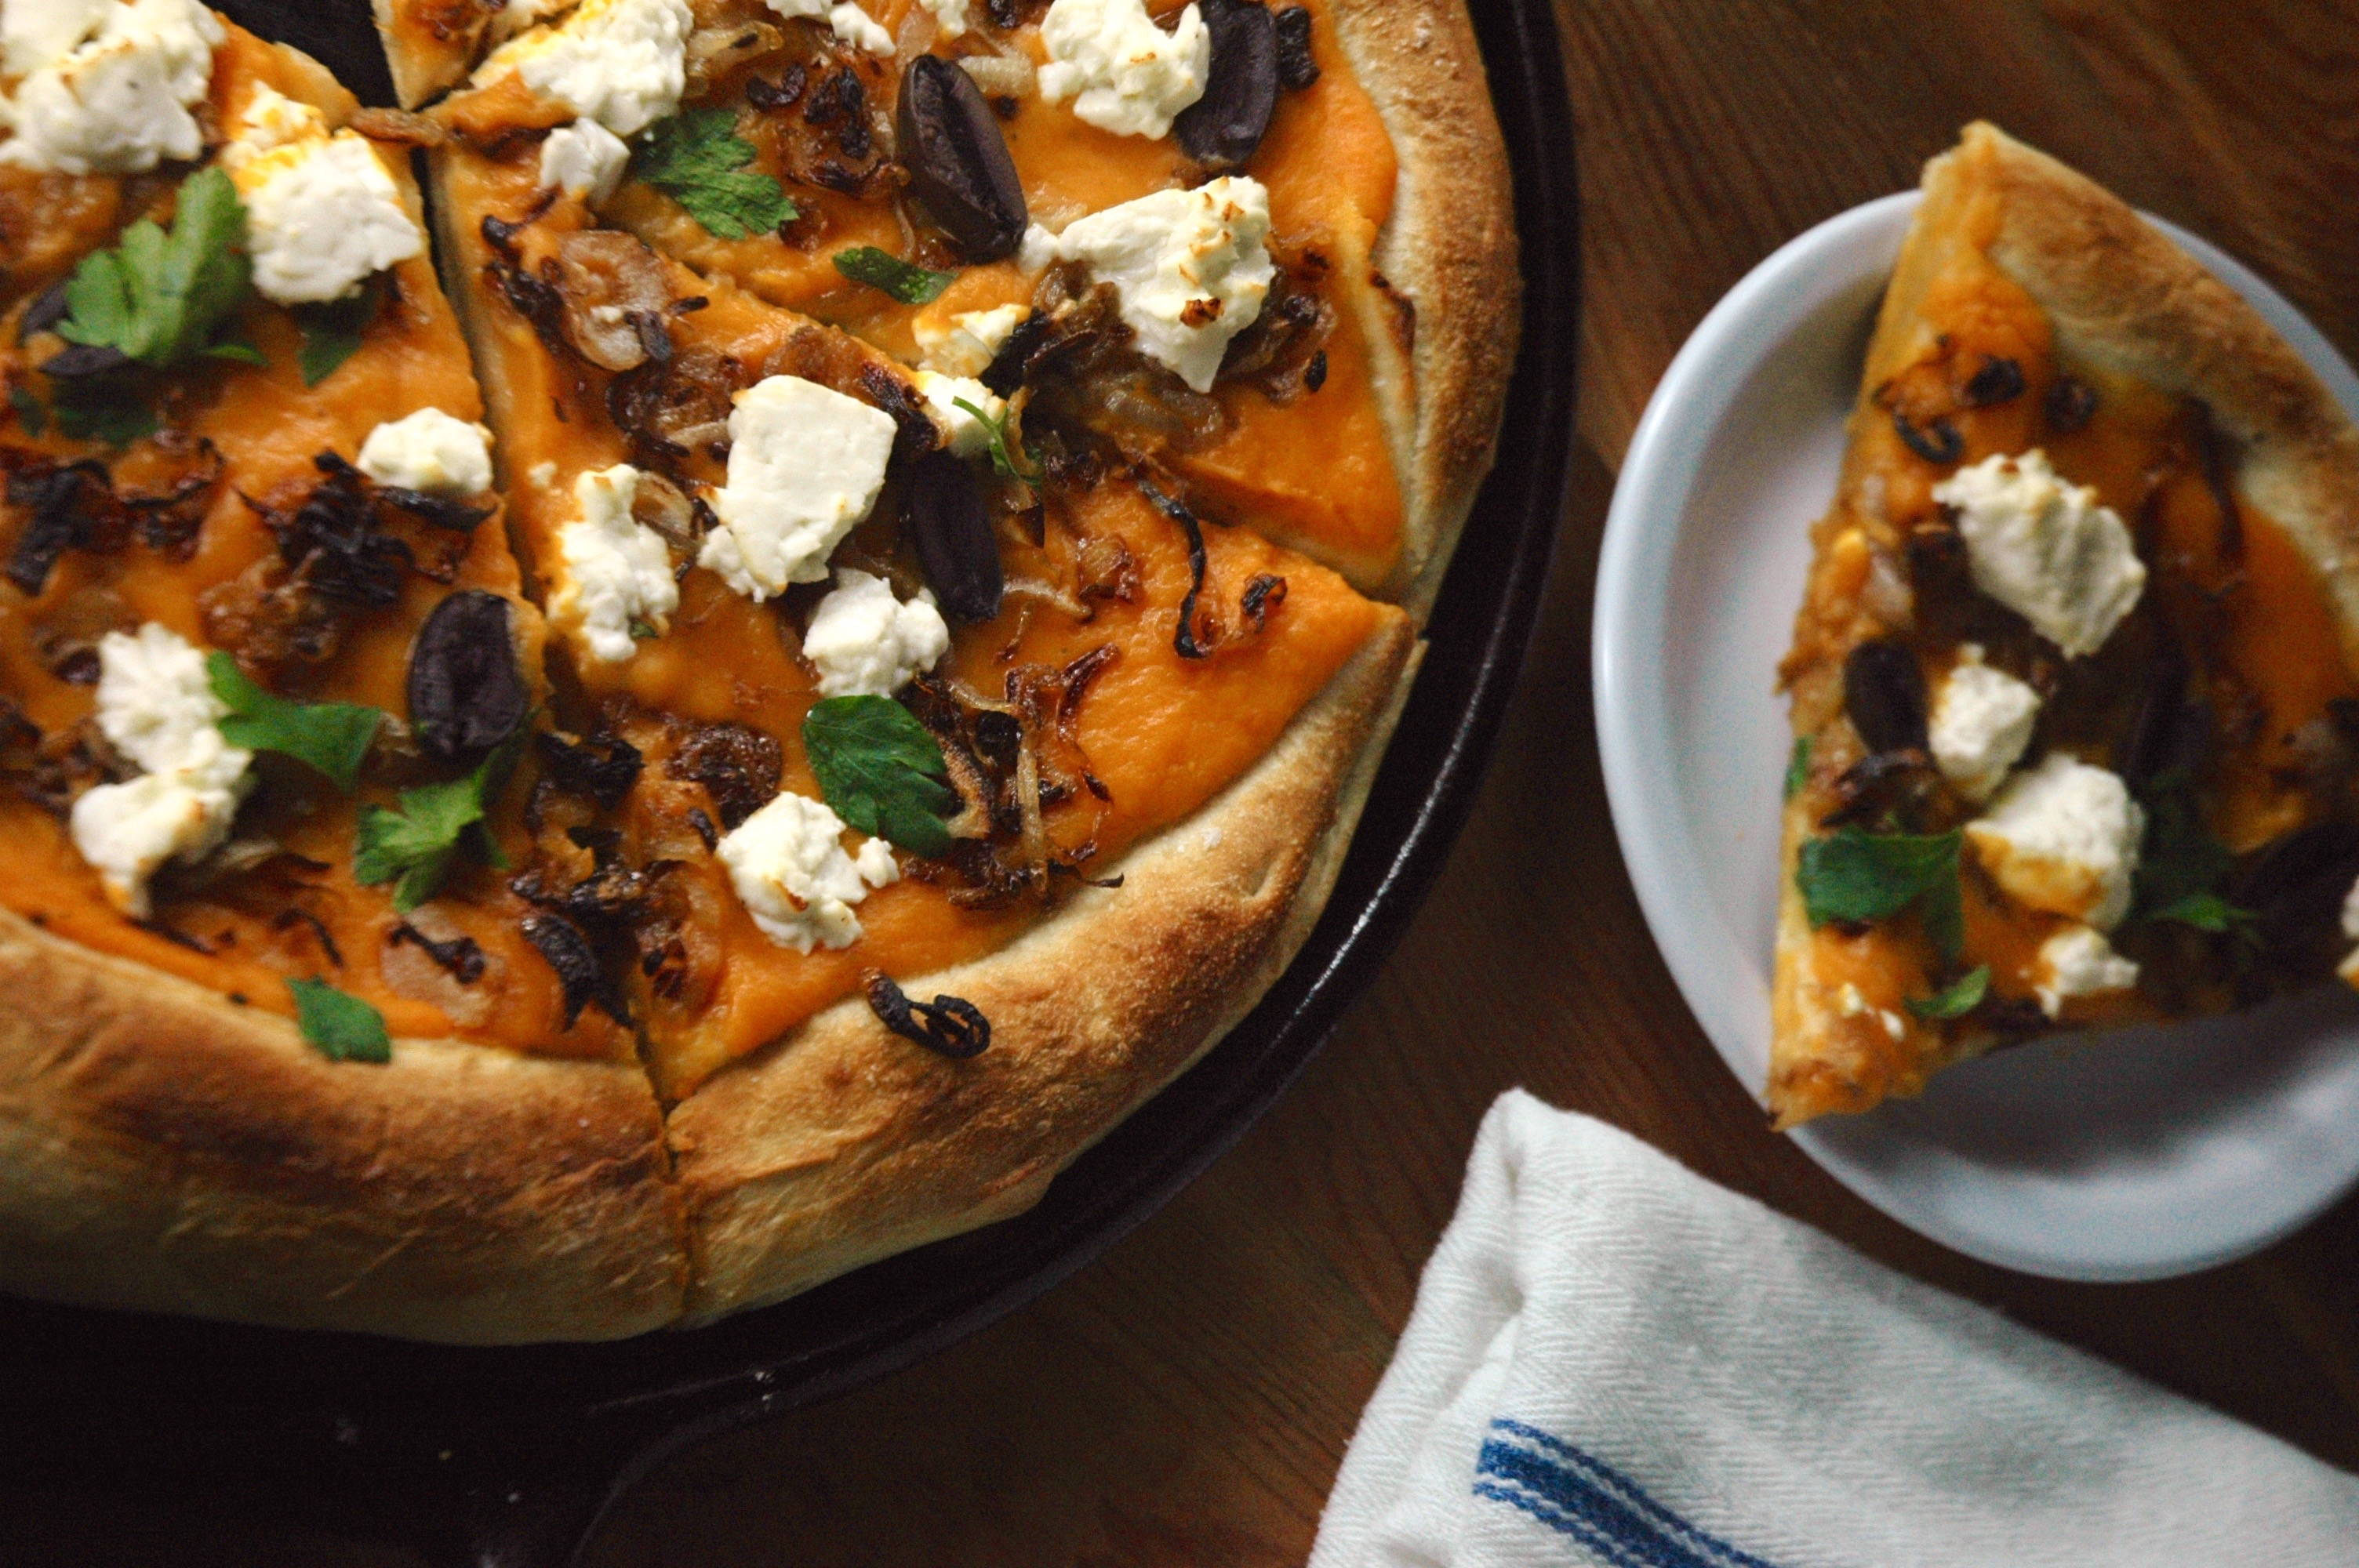 Caramelized Shallot and Feta Pizza with Sweet Potato Sauce